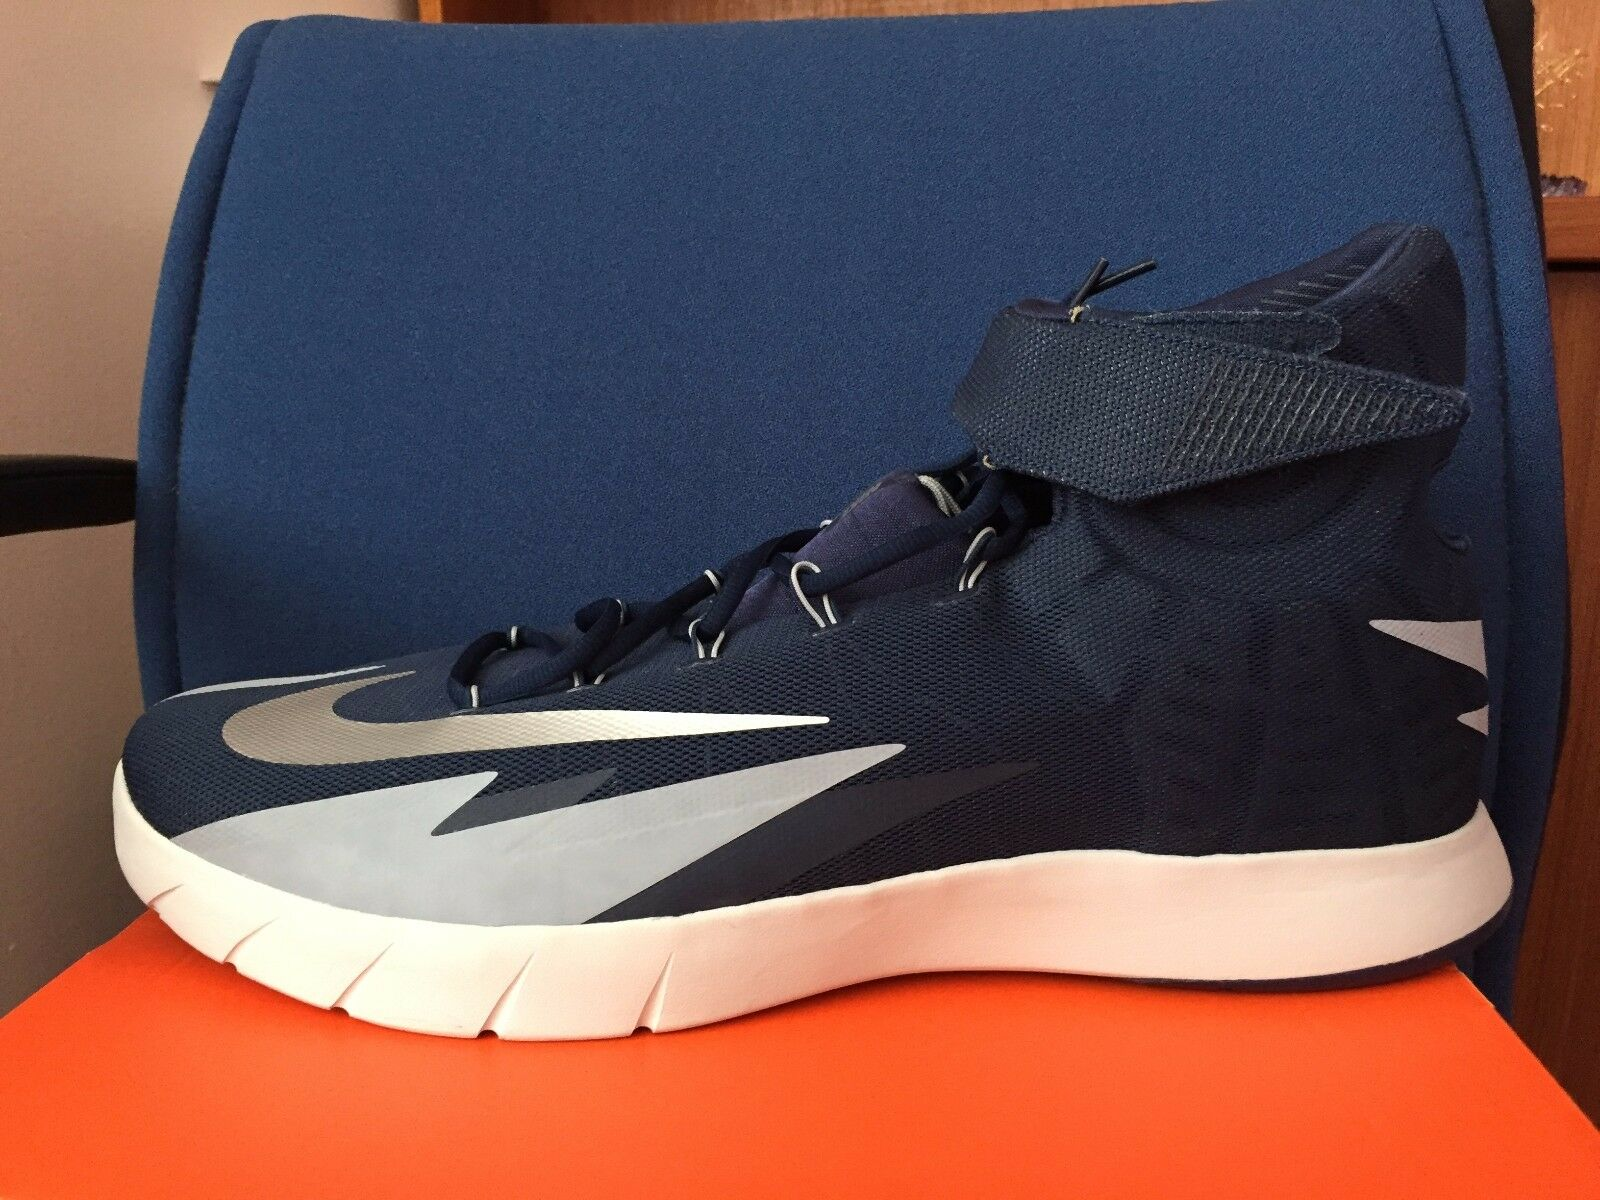 2018 Nike Zoom Hyperrev TB Basketball Shoes sz 18 Navy Blue Silver 643301-401 DS